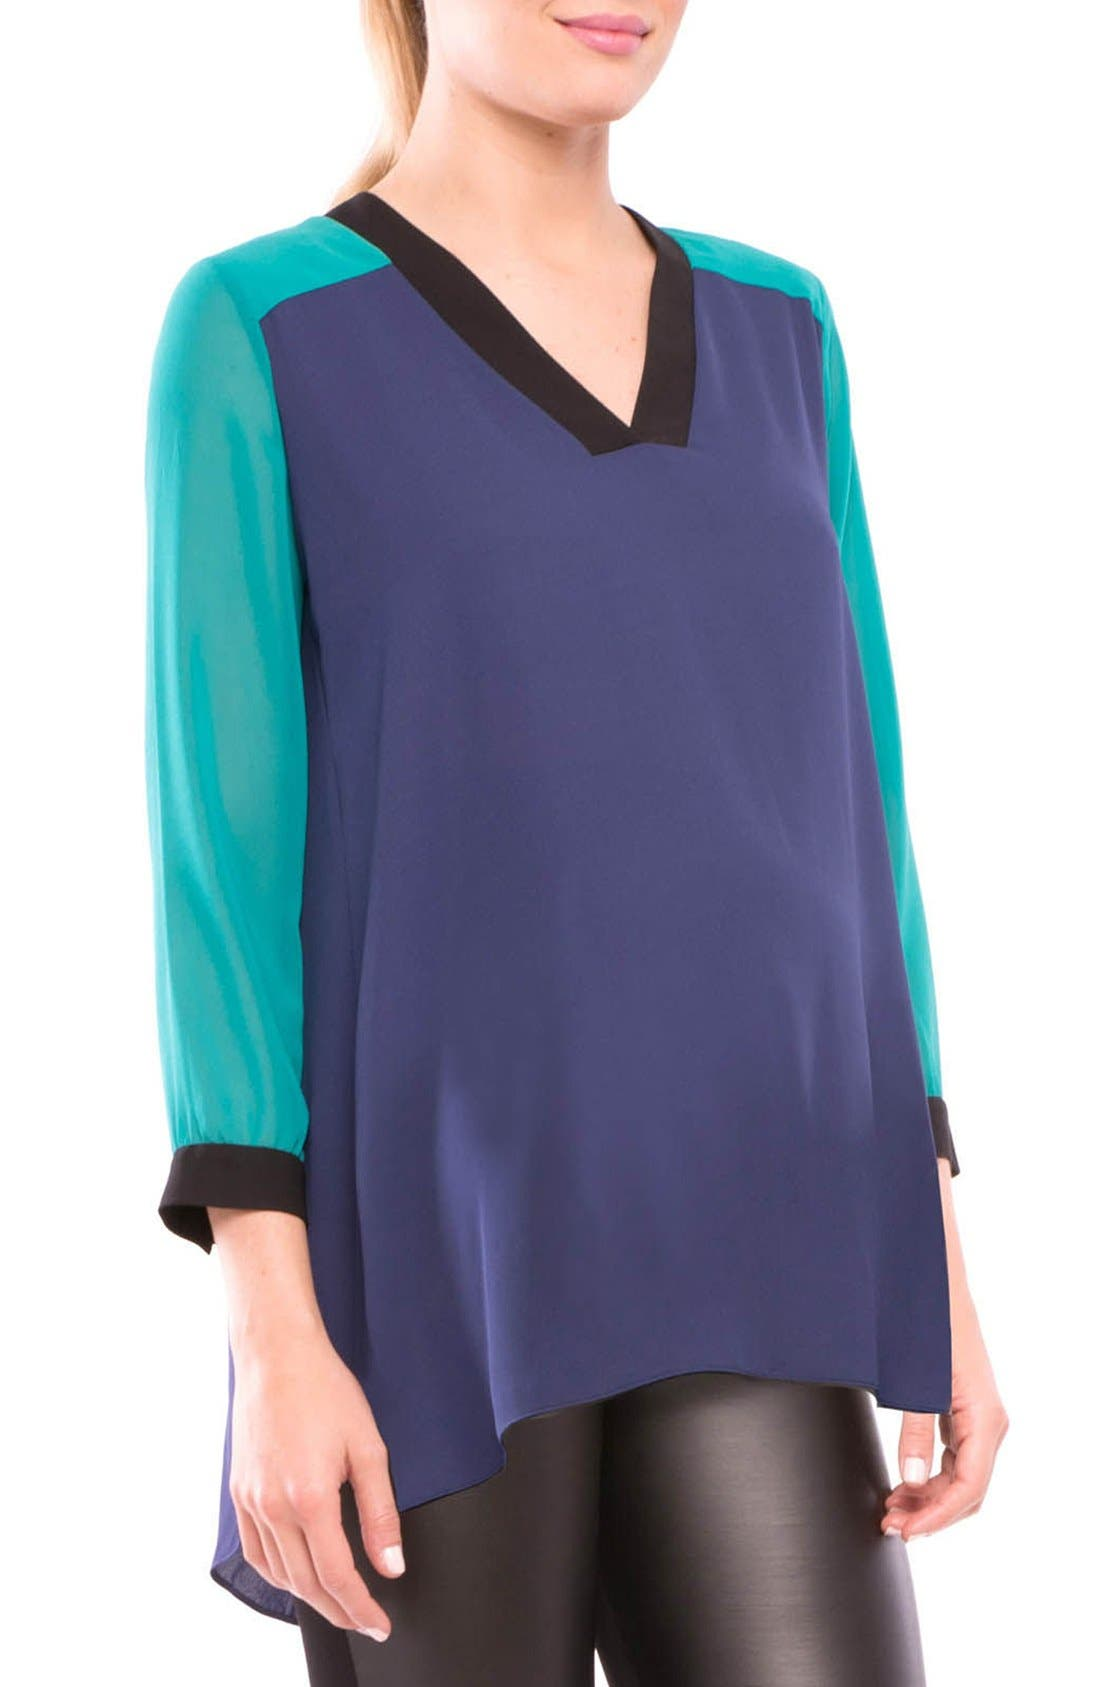 Leah Maternity Top,                             Alternate thumbnail 3, color,                             NAVY/ TEAL/ BLACK